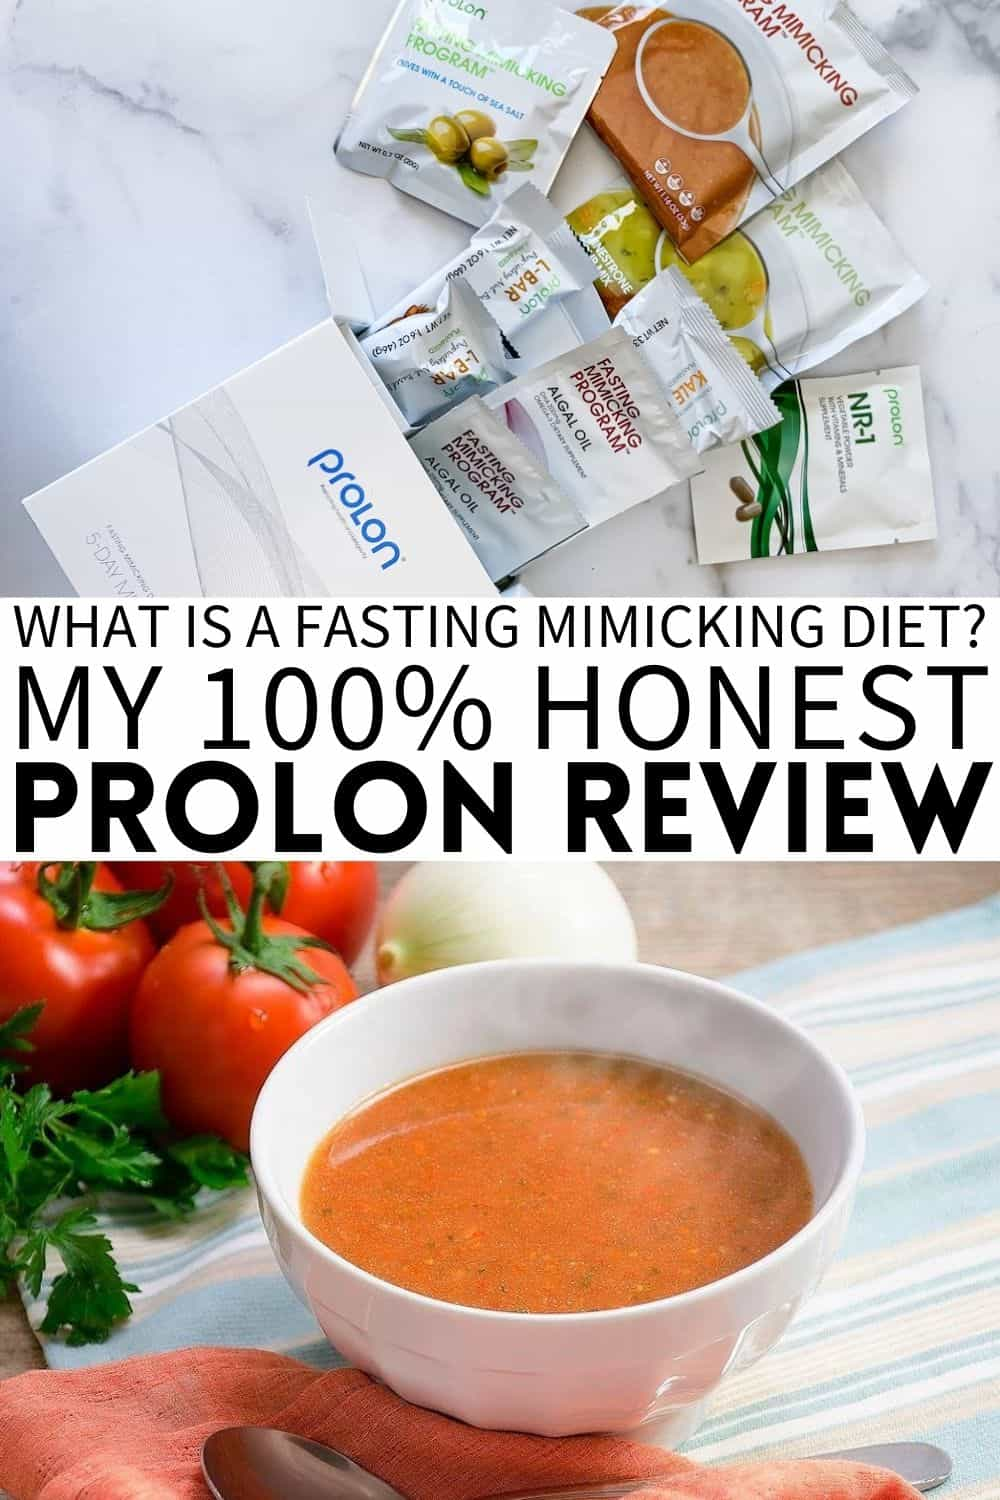 PROLON REVIEW: WHAT IS A FASTING MIMICKING DIET